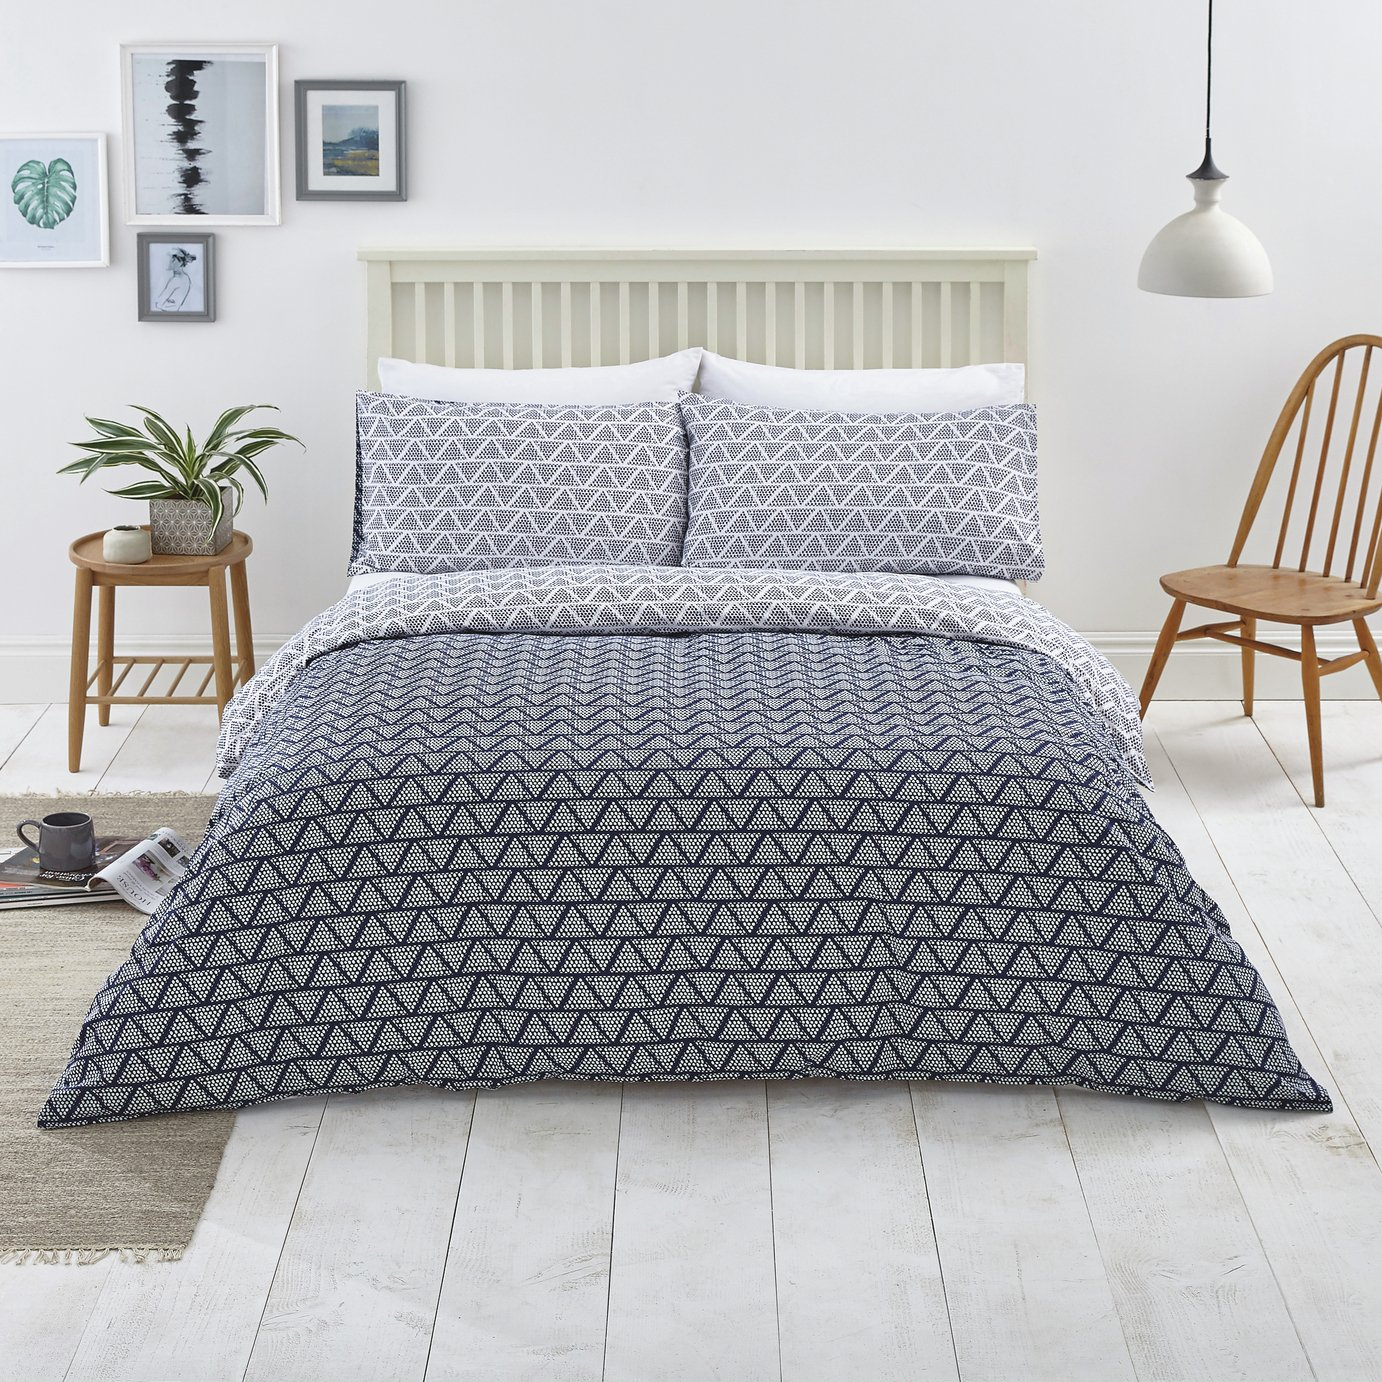 Argos Home Navy Zig Zag and Dot Bedding Set - Double